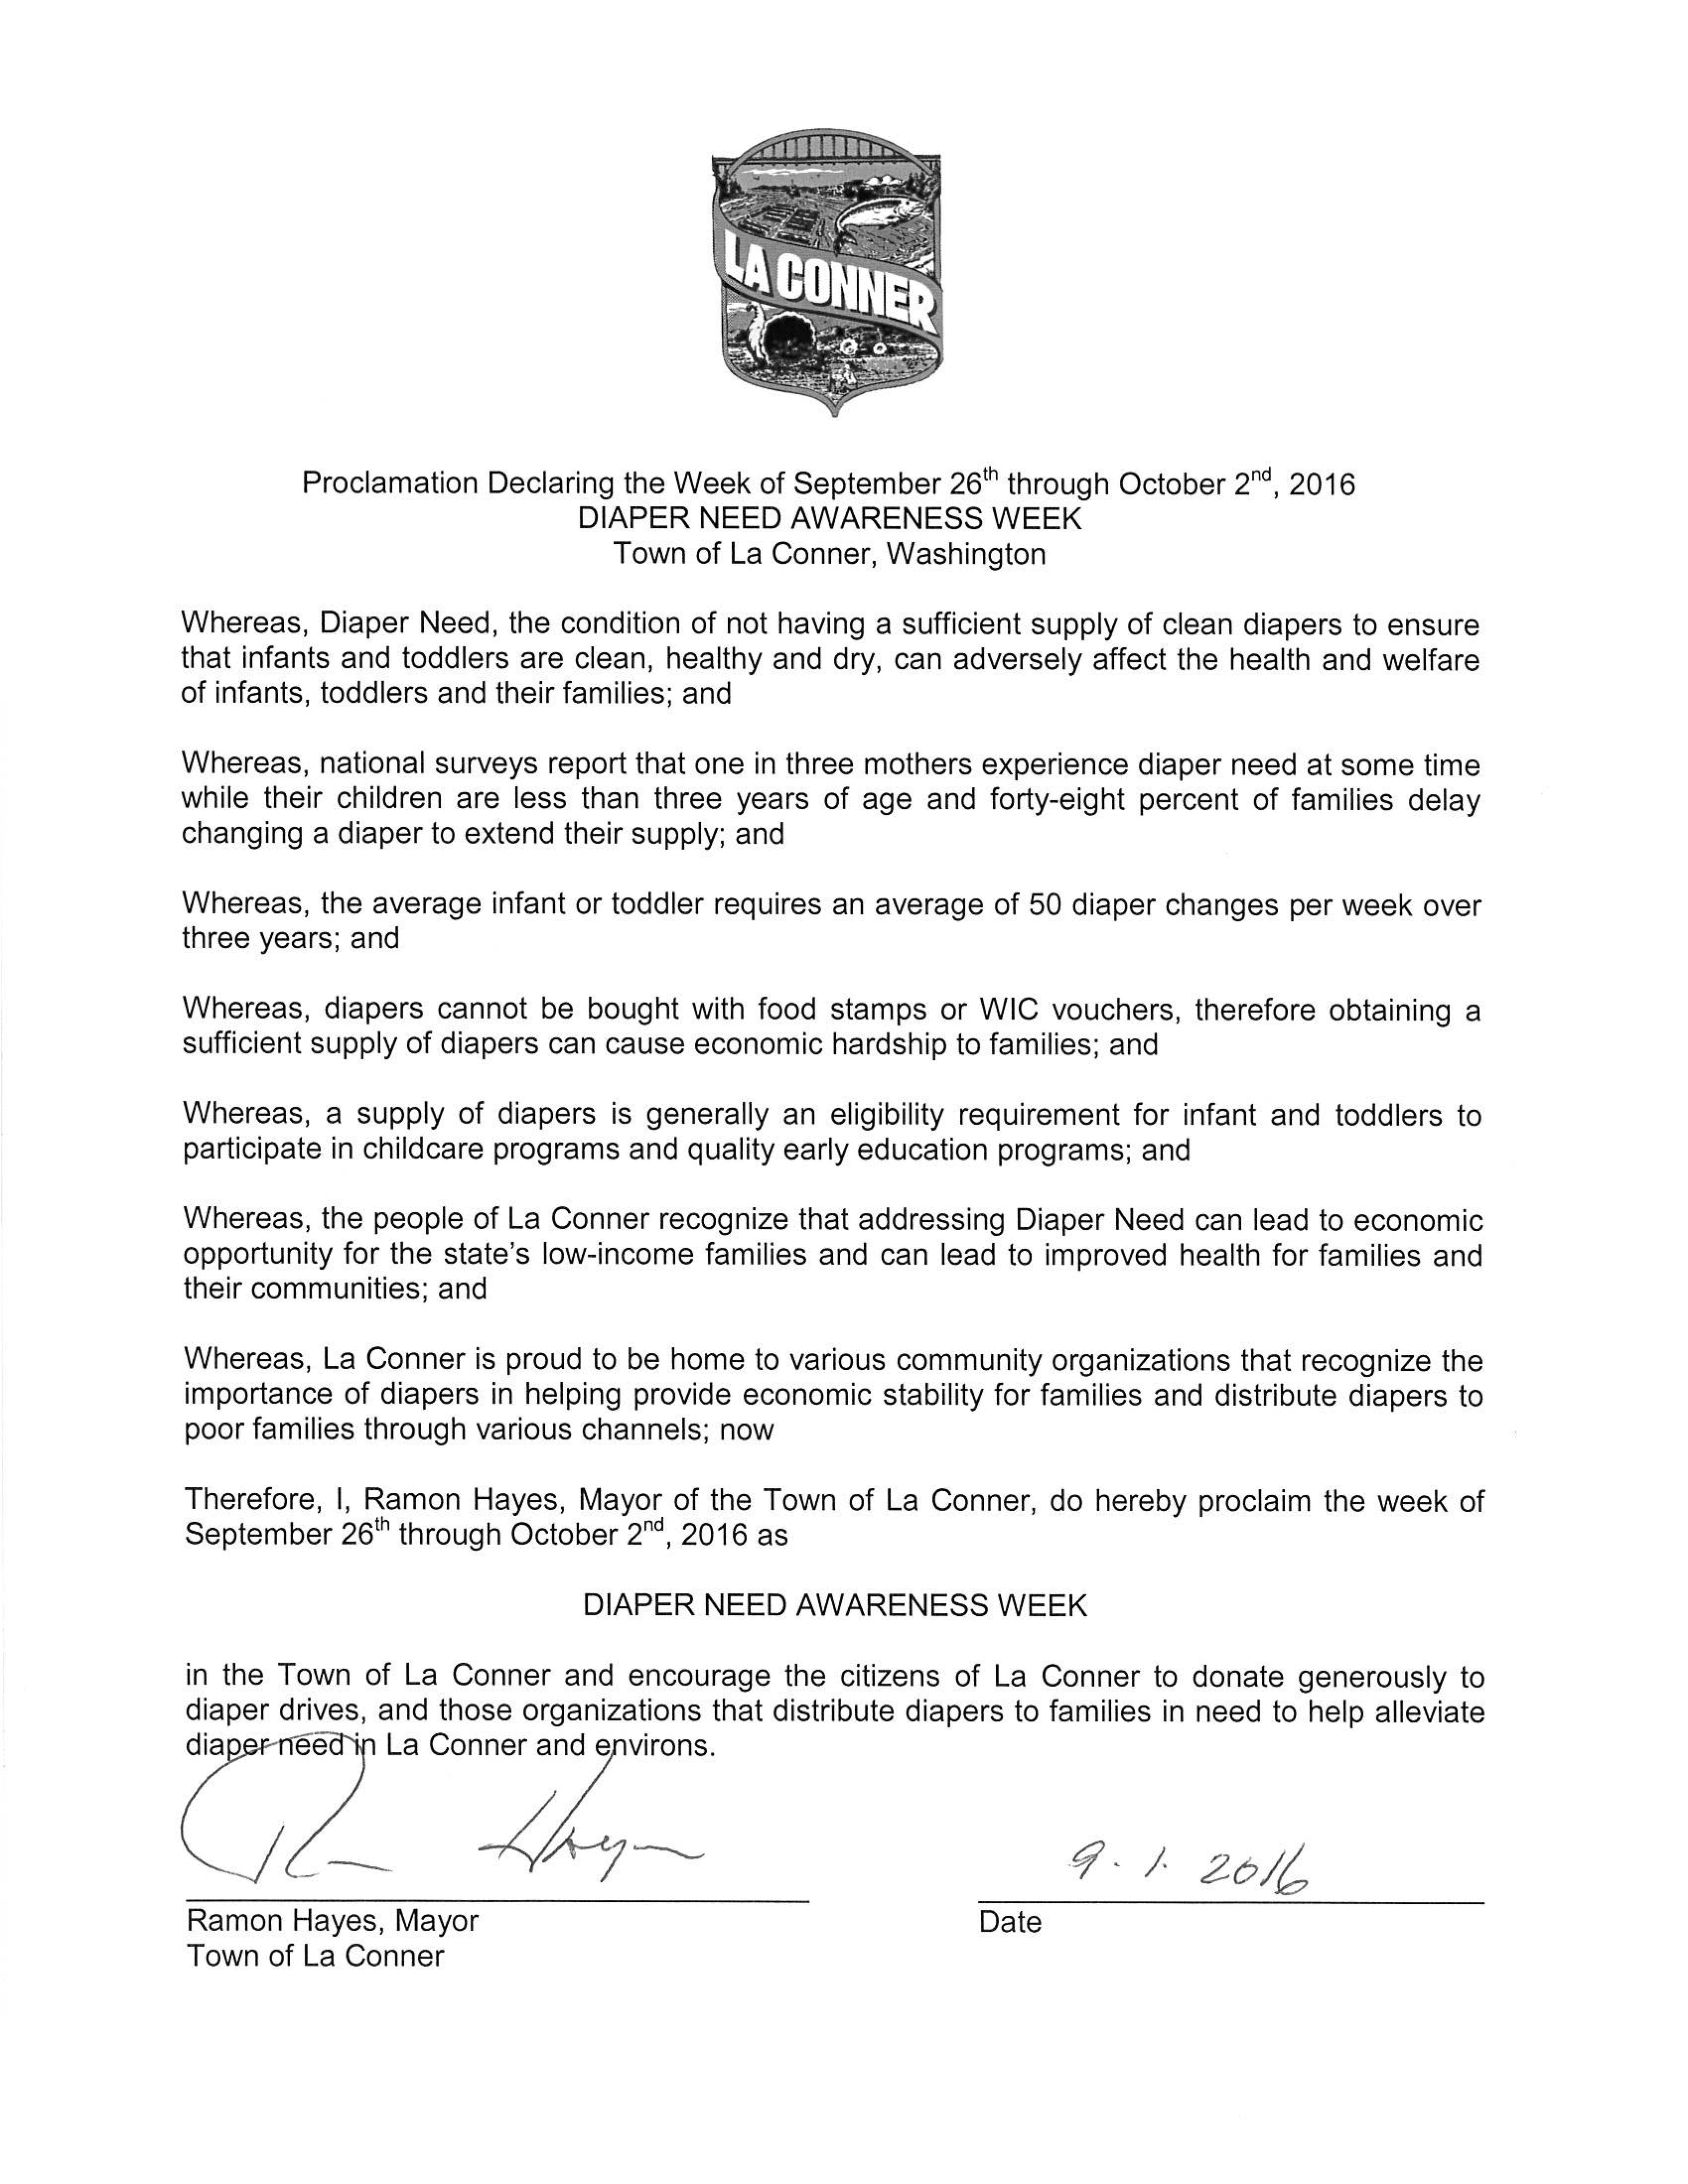 LA CONNER, WA - Mayoraly proclamation recognizing Diaper Need Awareness Week (Sep. 26th - Oct. 2, 2016) Diaperneed.org #Diaperneed